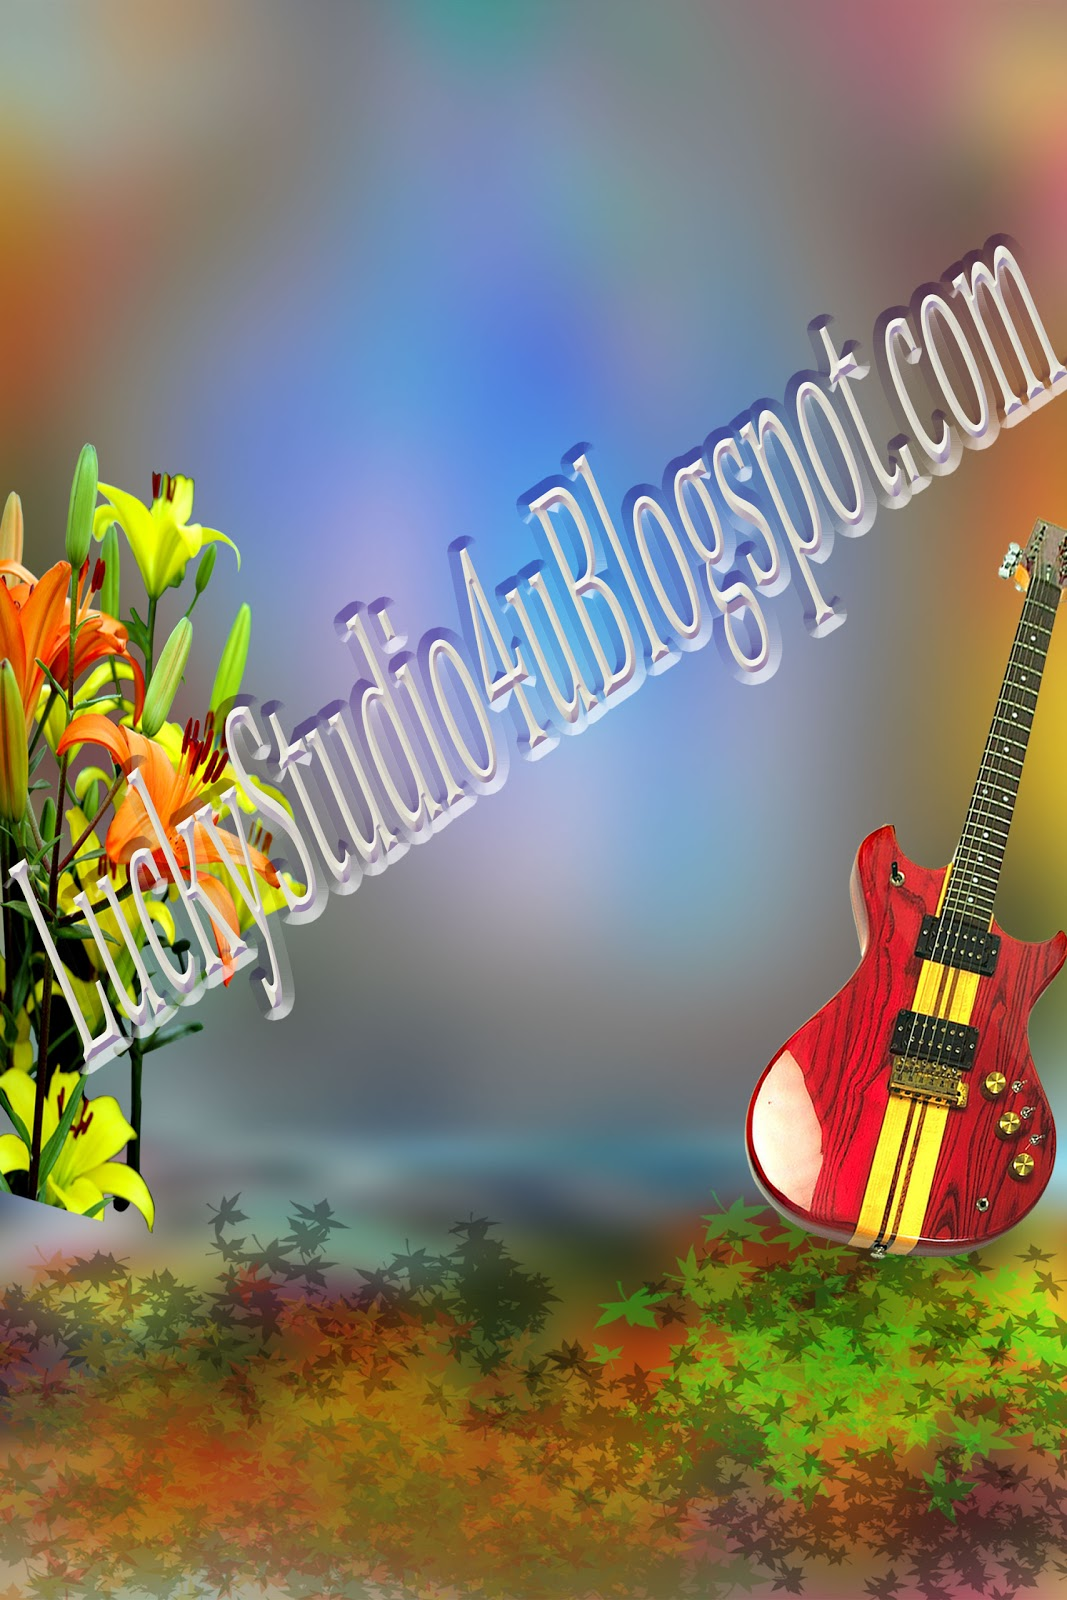 Android Animated Wallpaper Tutorial New Studio Backgrounds Photo Editing Free Download